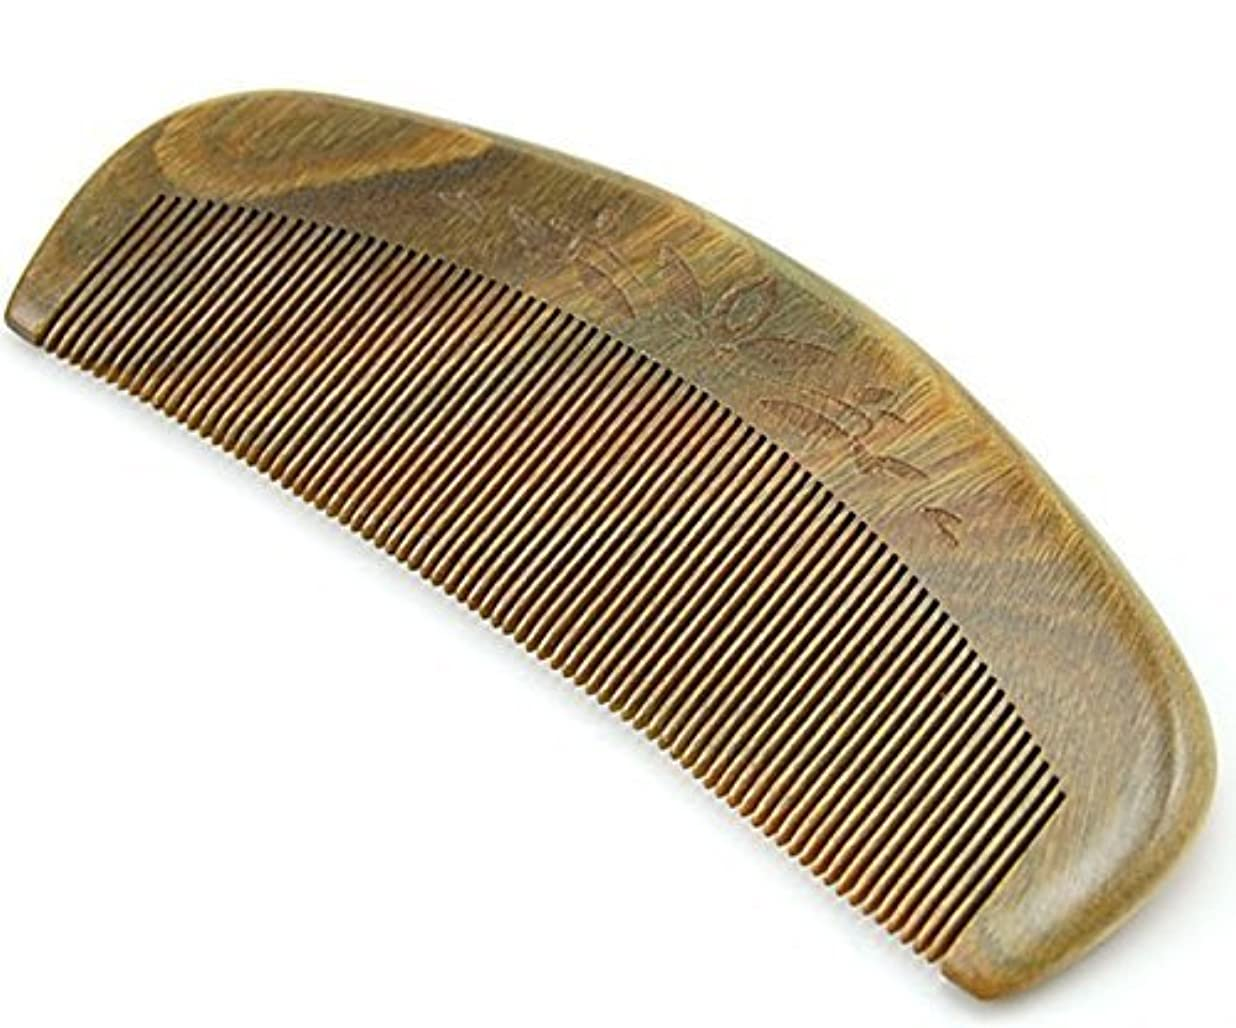 Joyo Natural Green Sandalwood Fine Tooth Comb, Anti Static Pocket Wooden Comb 5